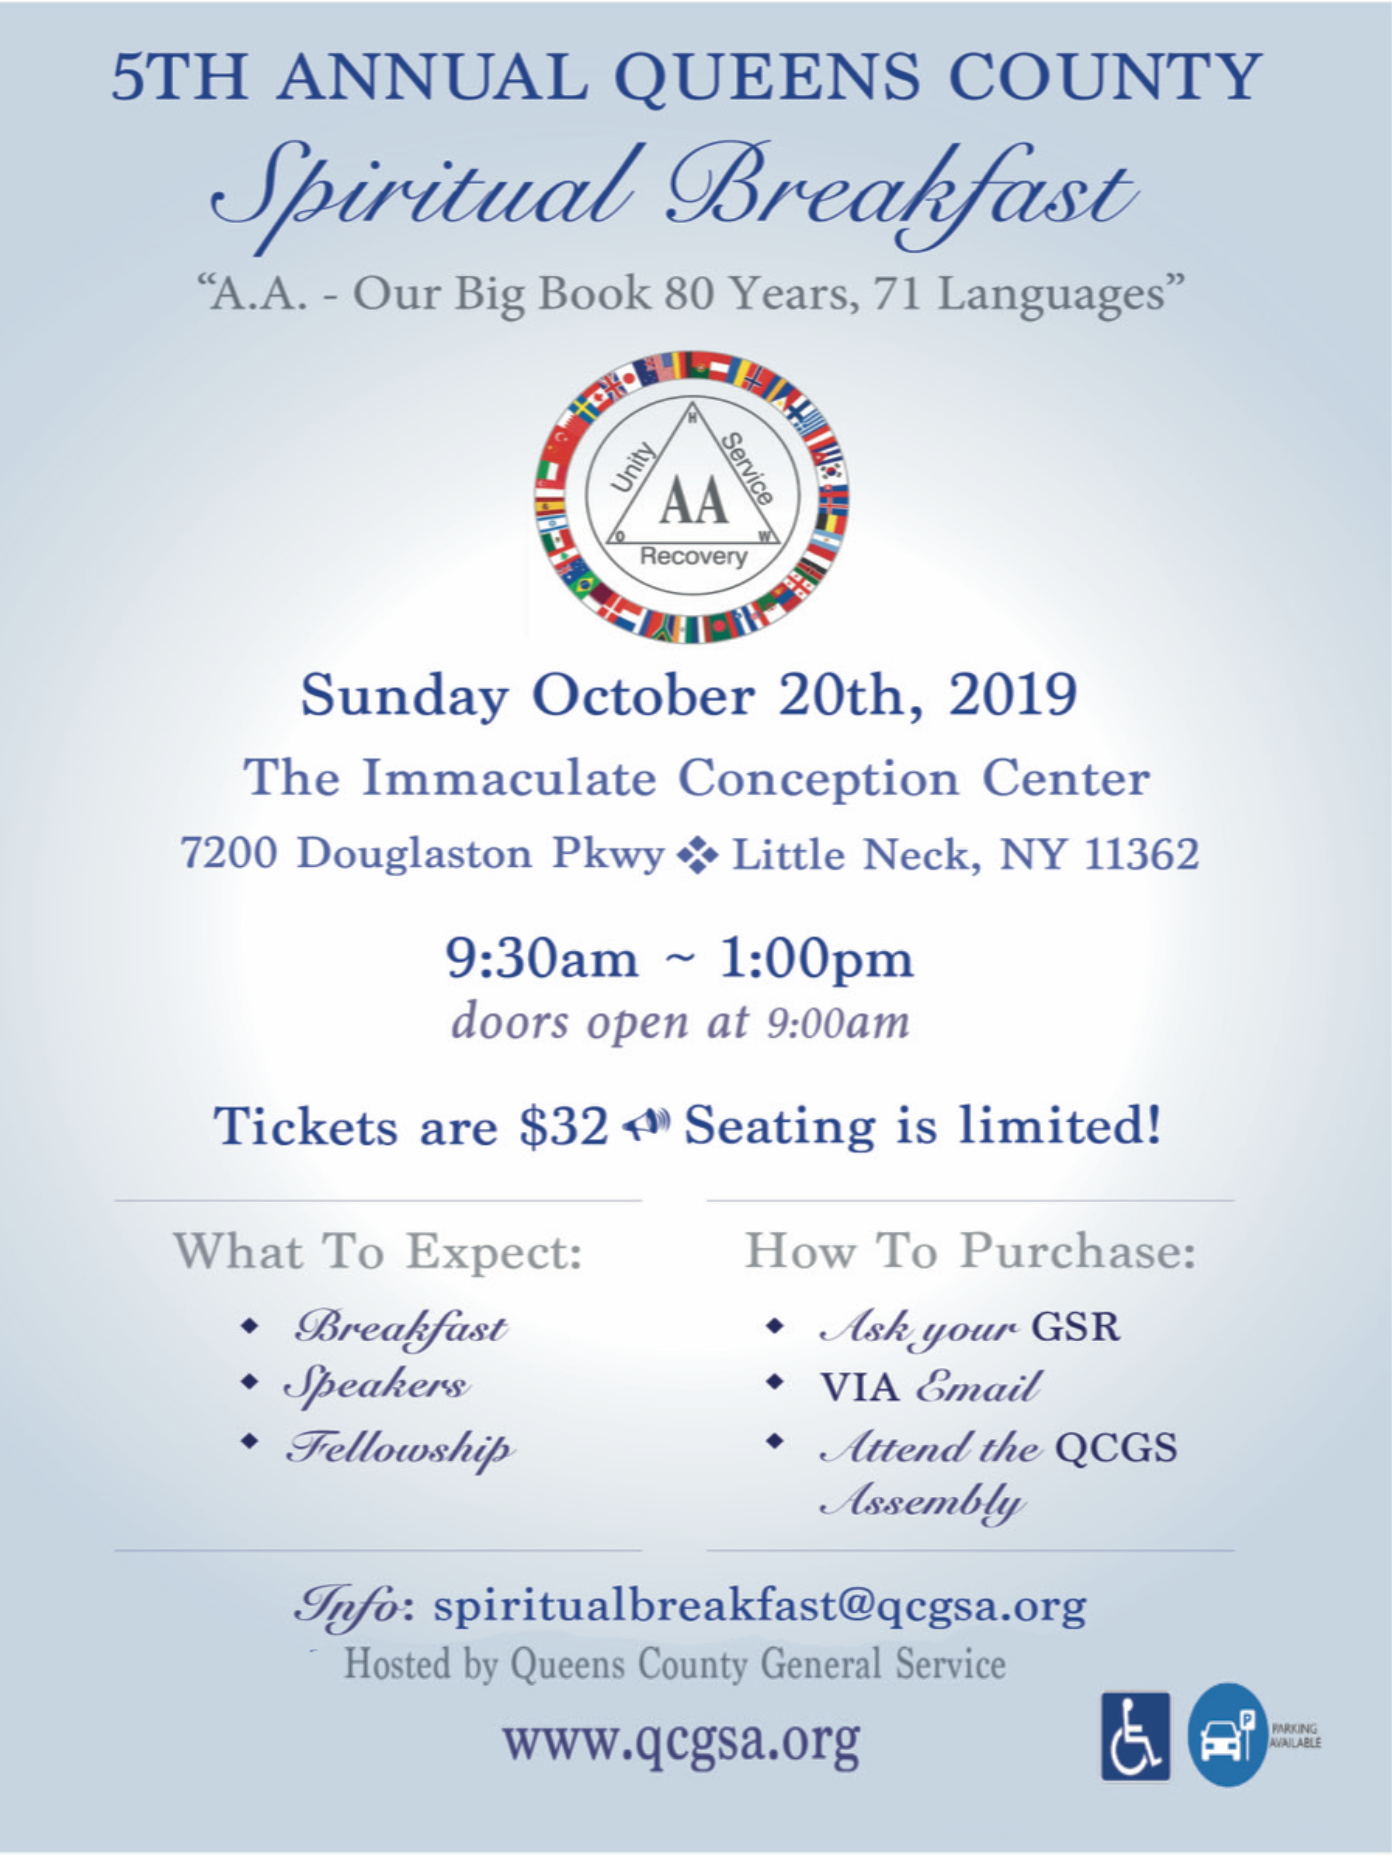 5th Annual Queens County Spiritual Breakfast